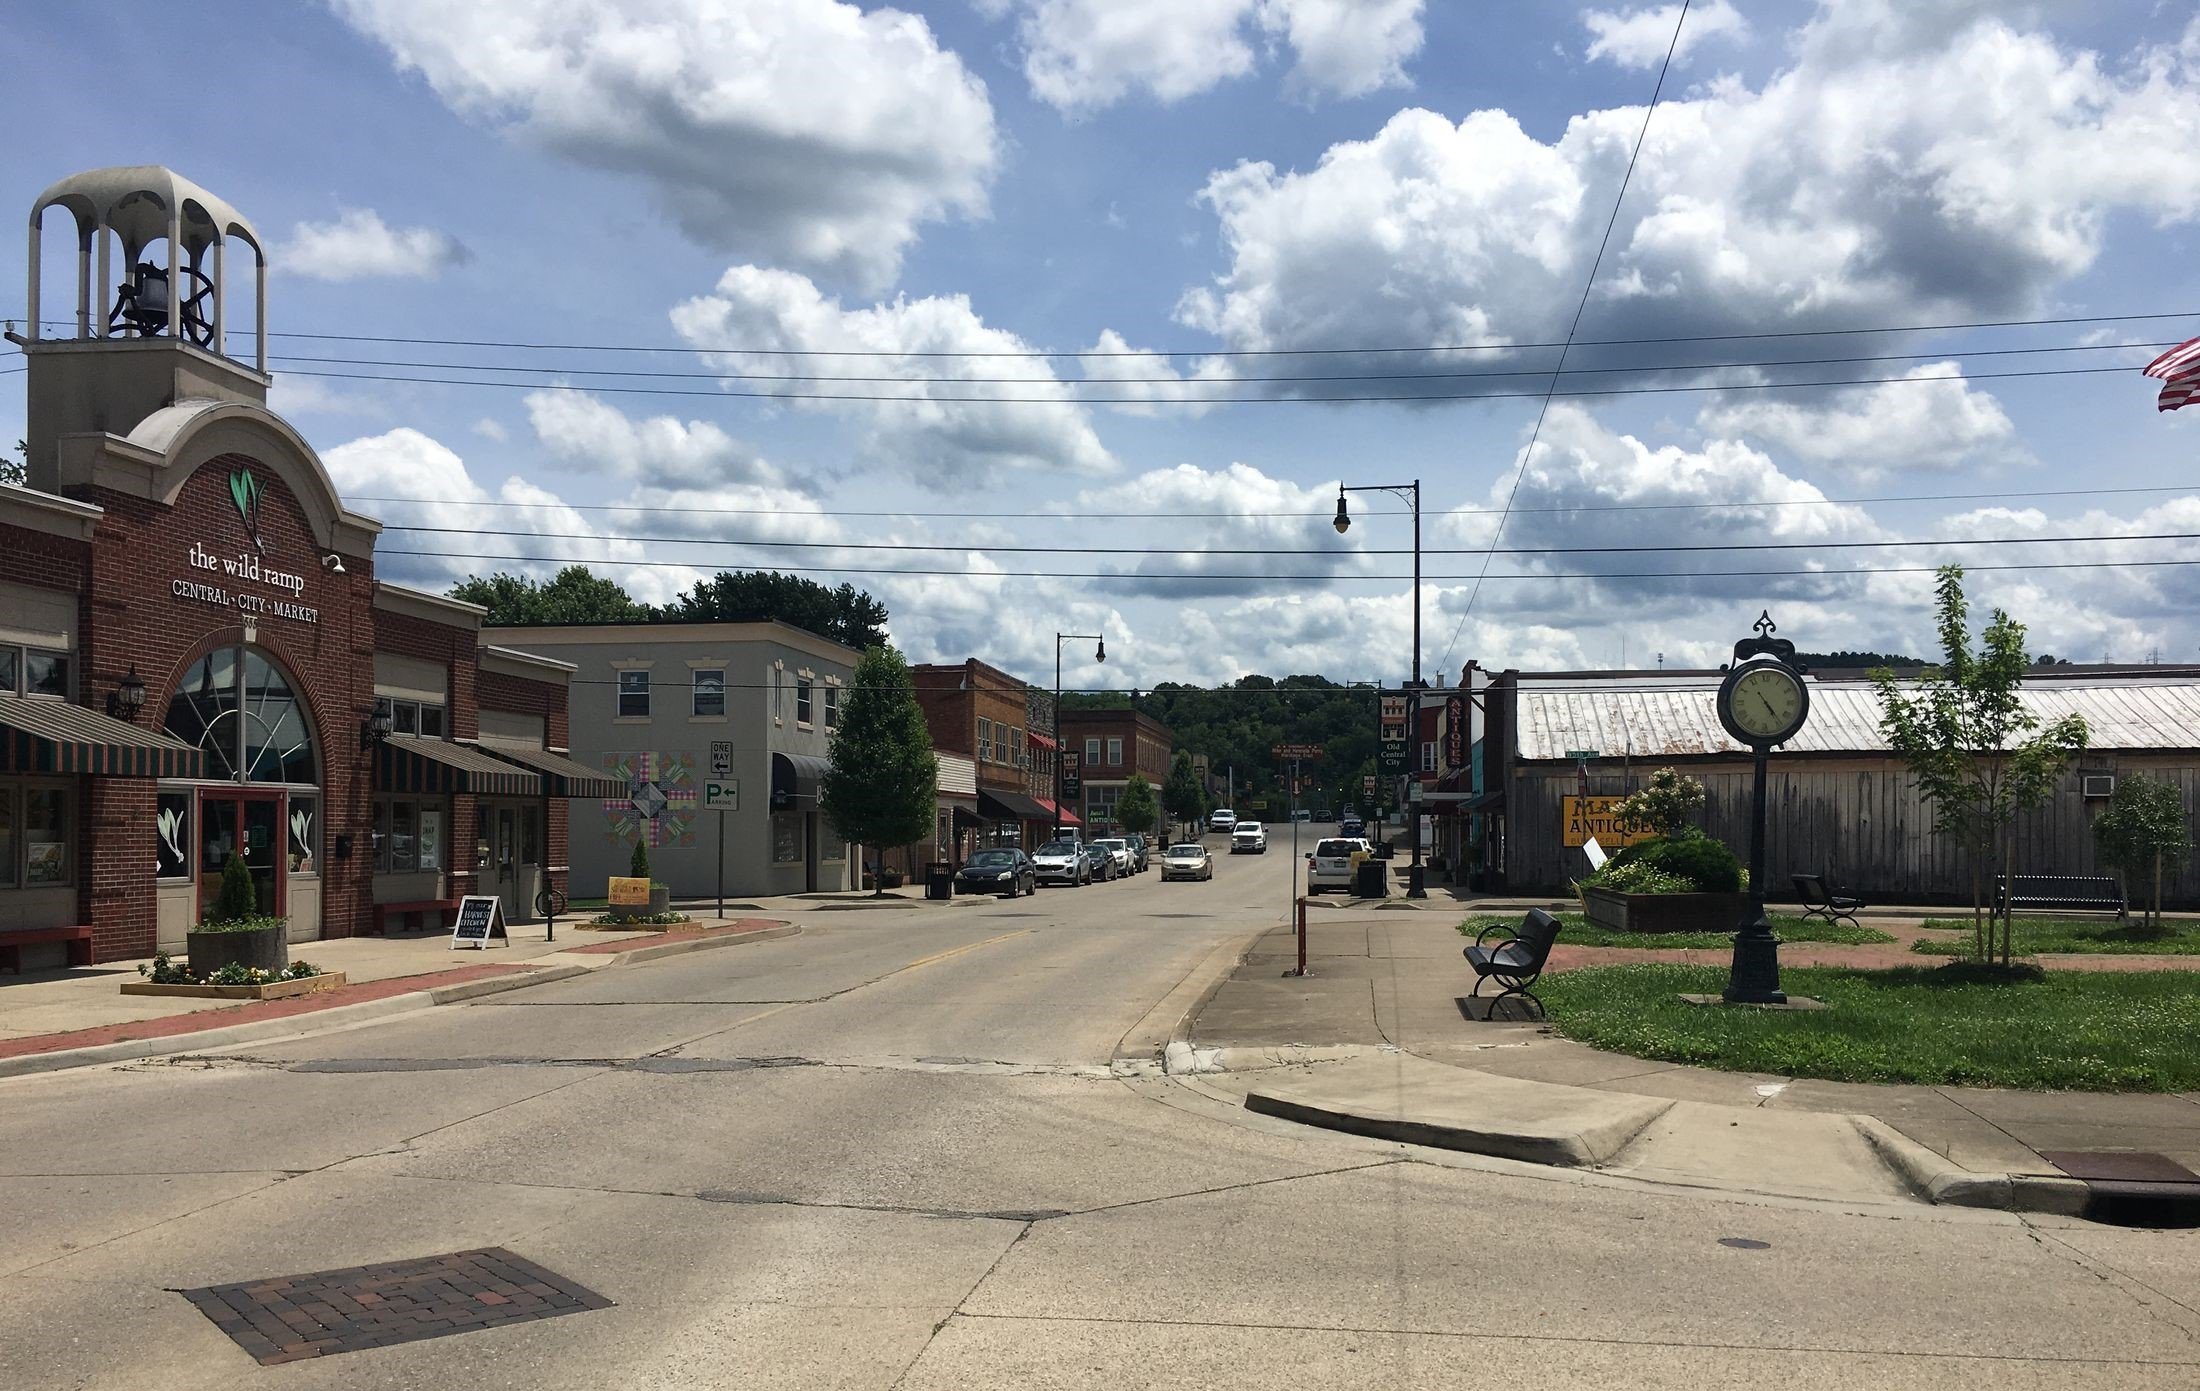 Once a thriving industrial town, Central City has since been adapted into a cultural and antique district. Image courtesy of Steven Cody Straley.